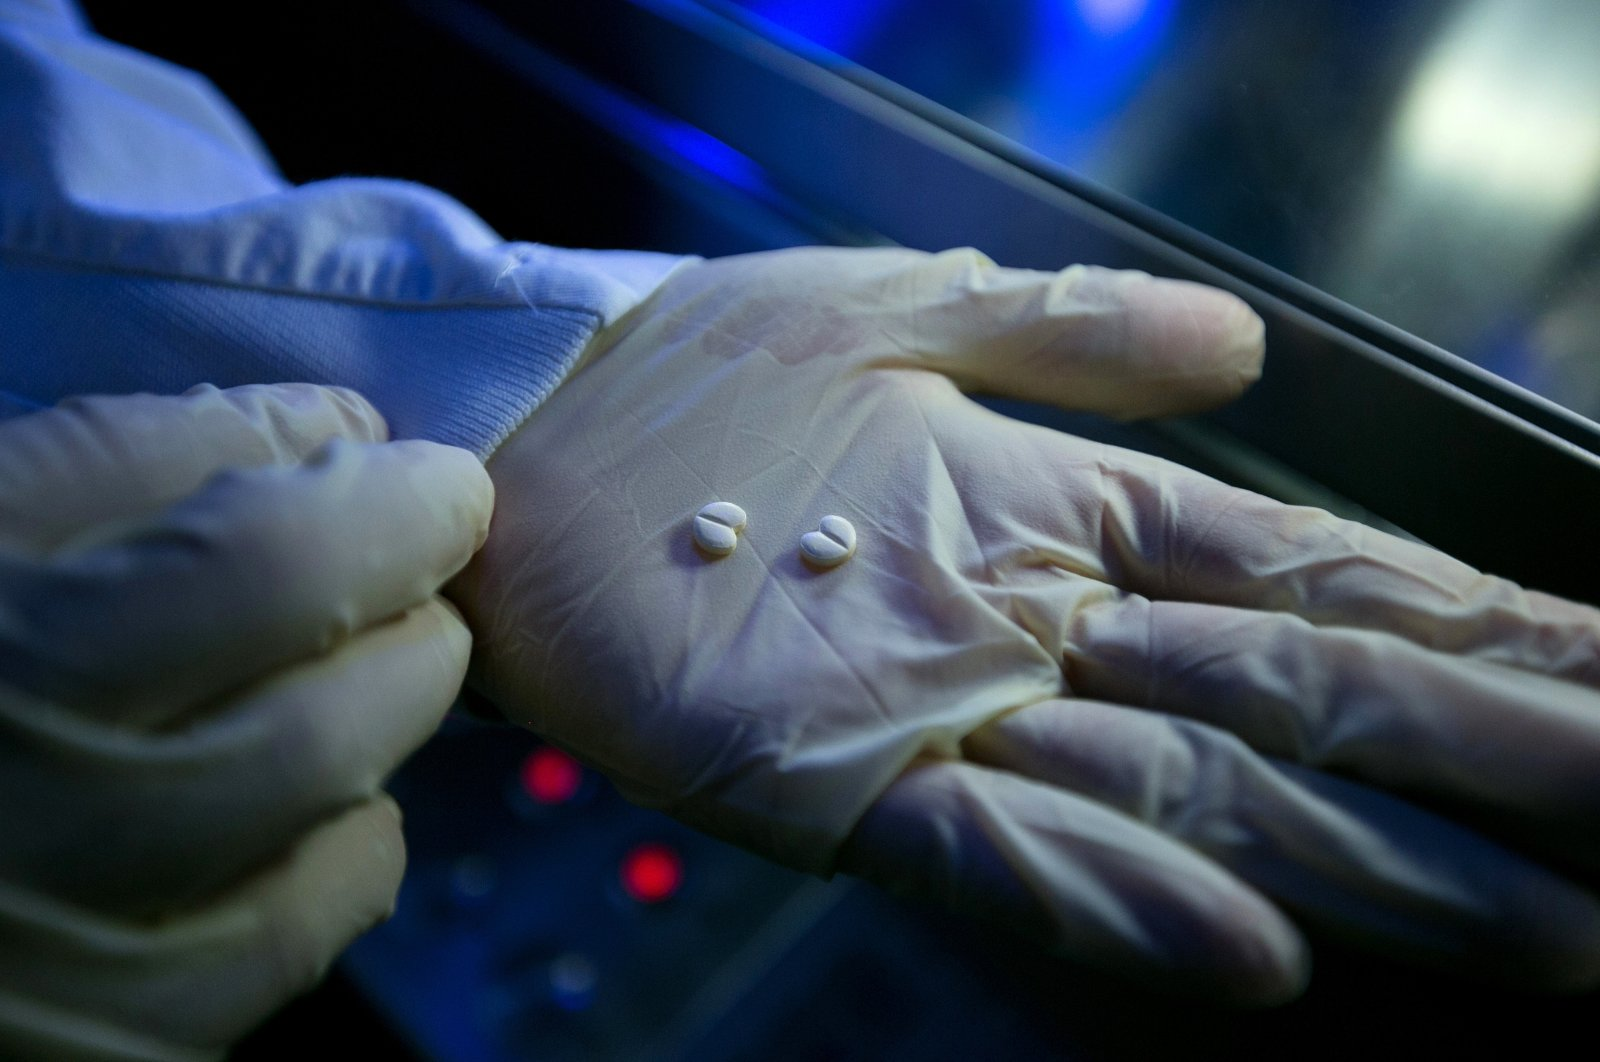 A laboratory technician holds blood pressure tablets during quality checks in the laboratories at the Merck headquarters in Darmstadt, Germany, June 25, 2014. (Getty Images)